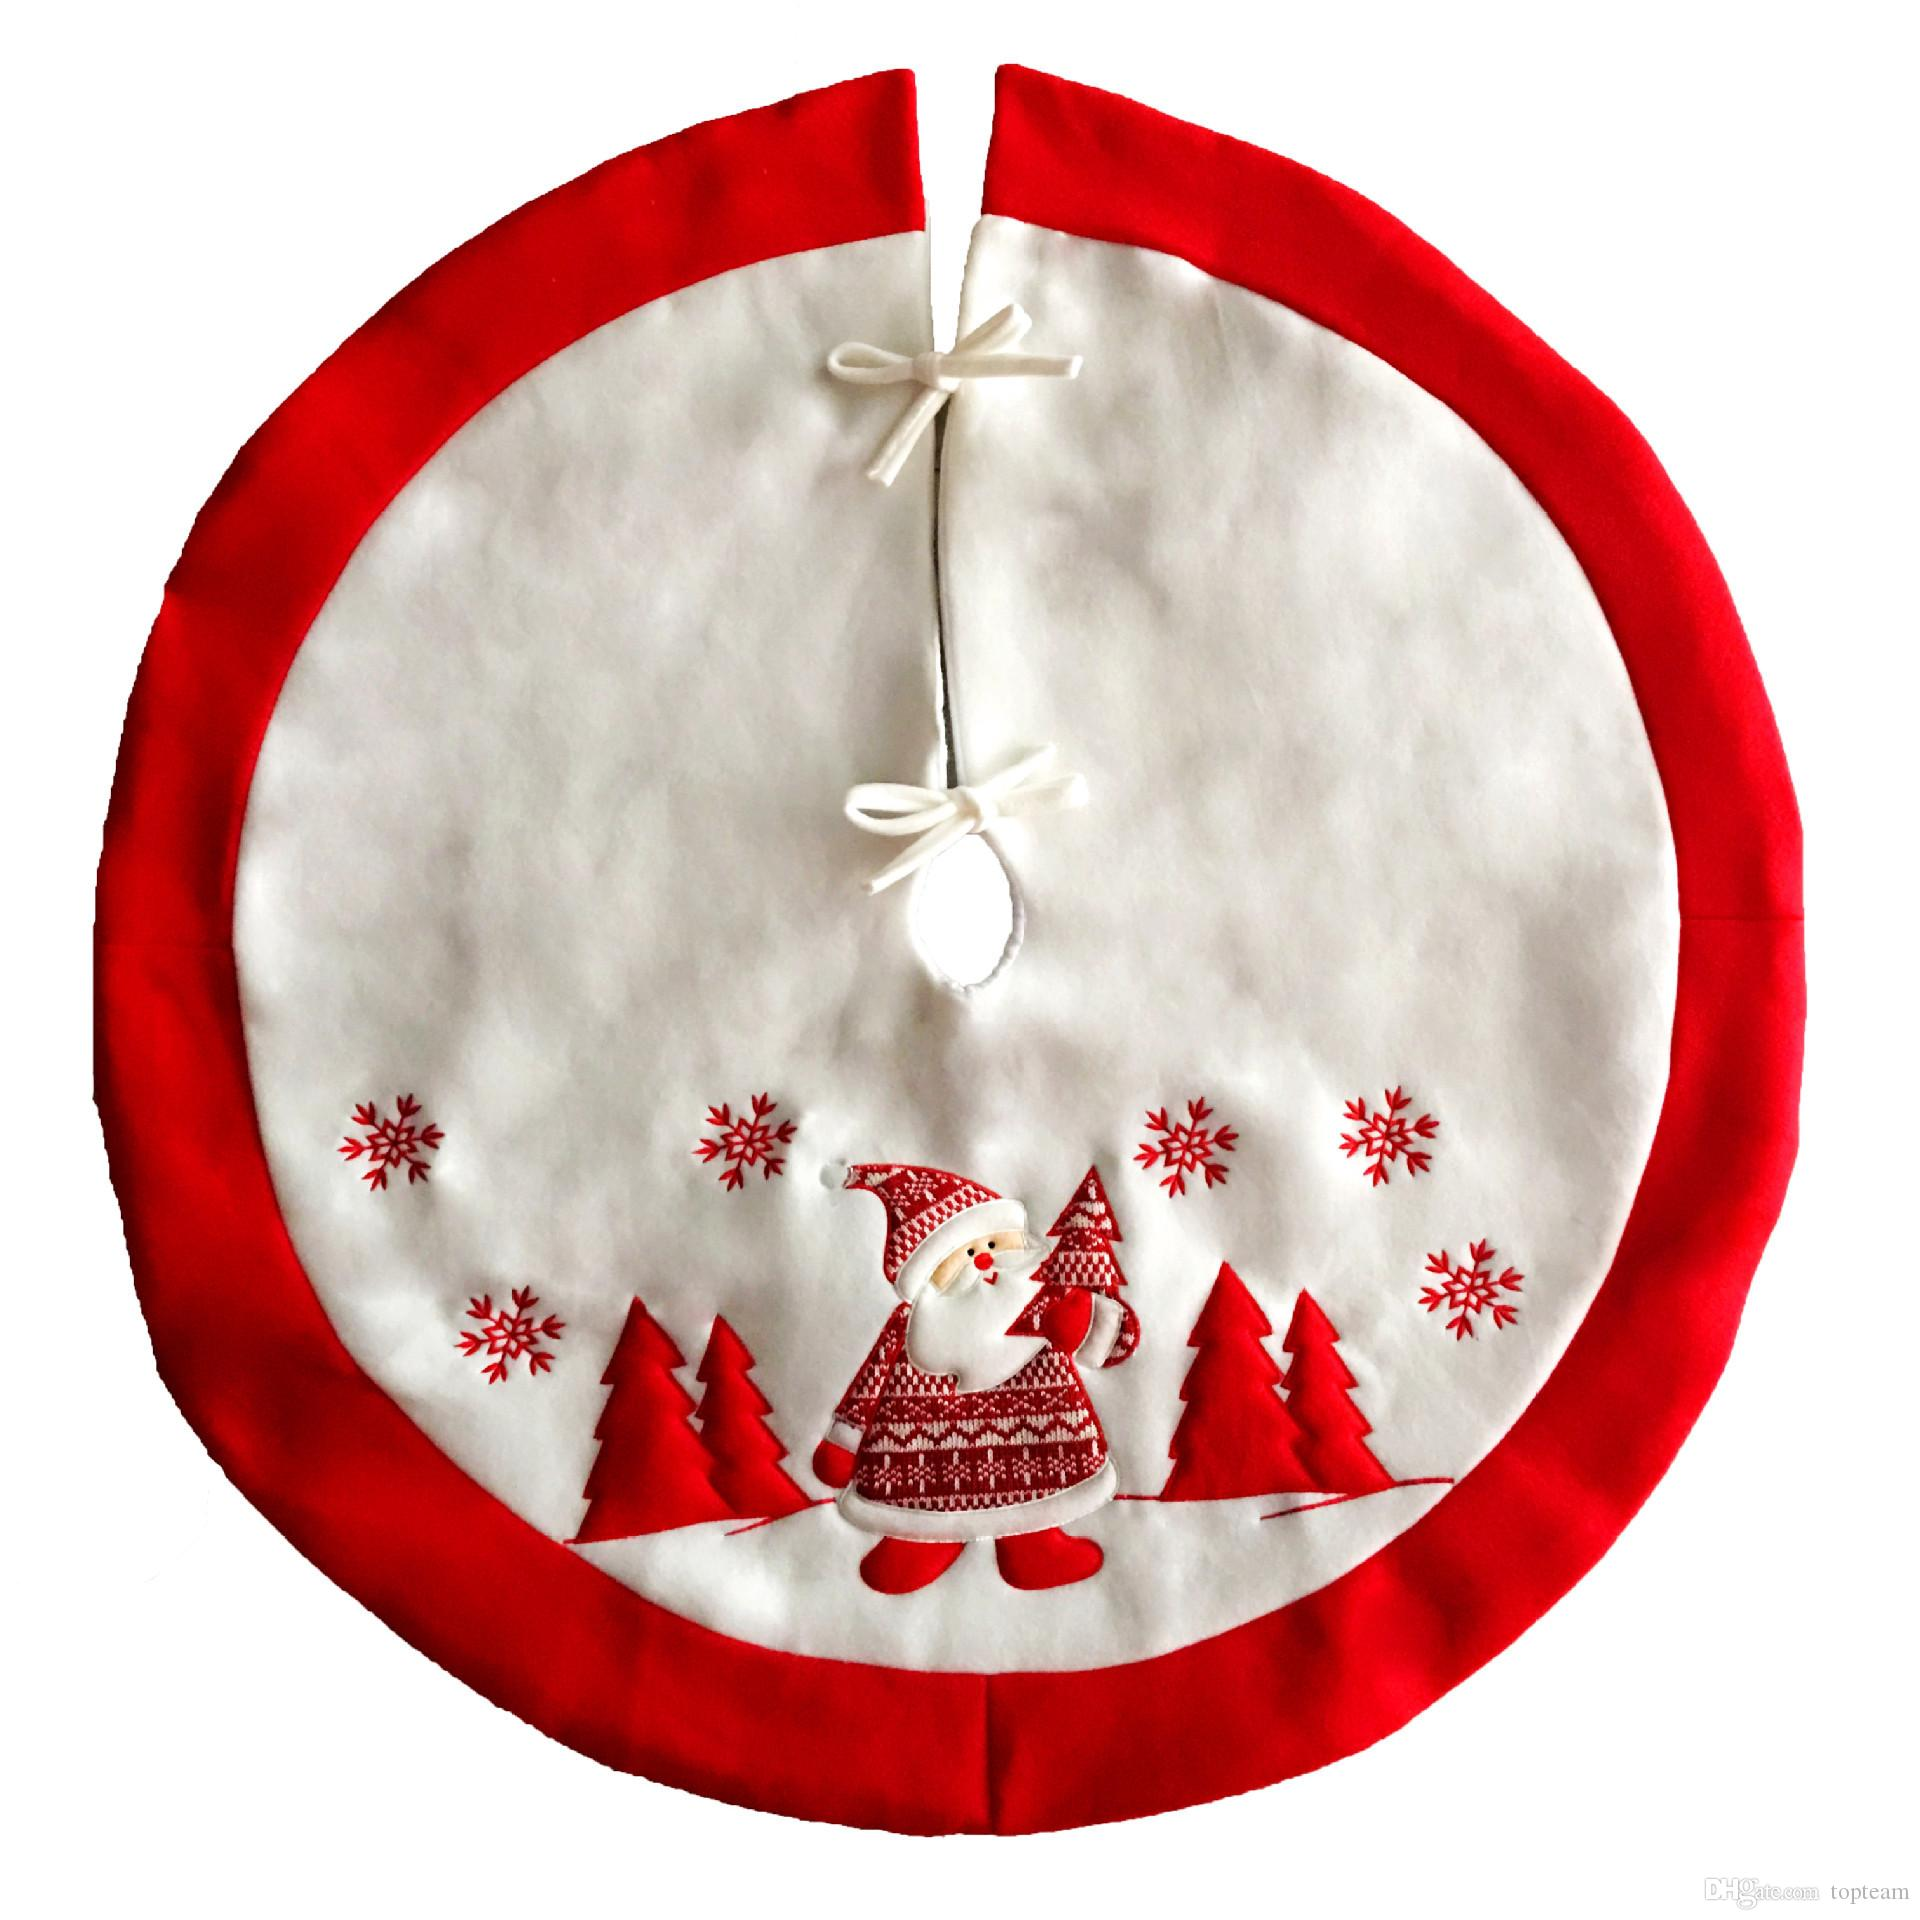 90cm red embroidered tree skirt apron christmas decorations for home